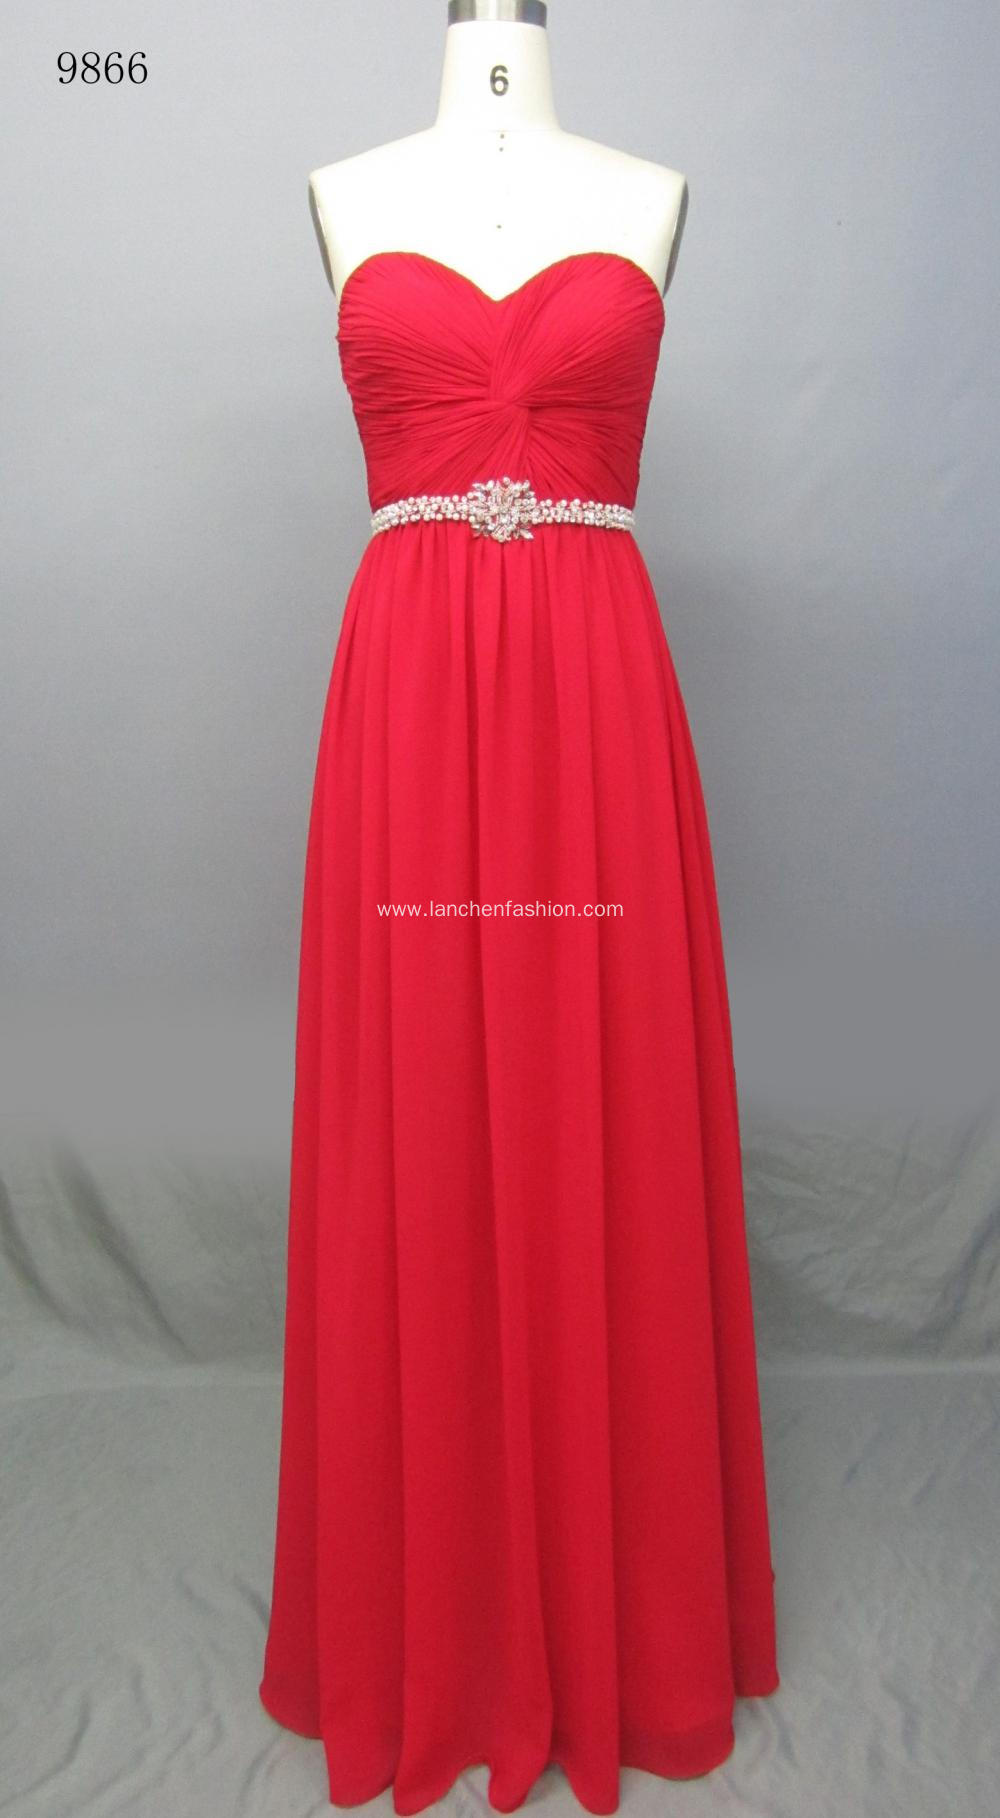 Elegant Vintage Long Bridemaid Maxi Dress